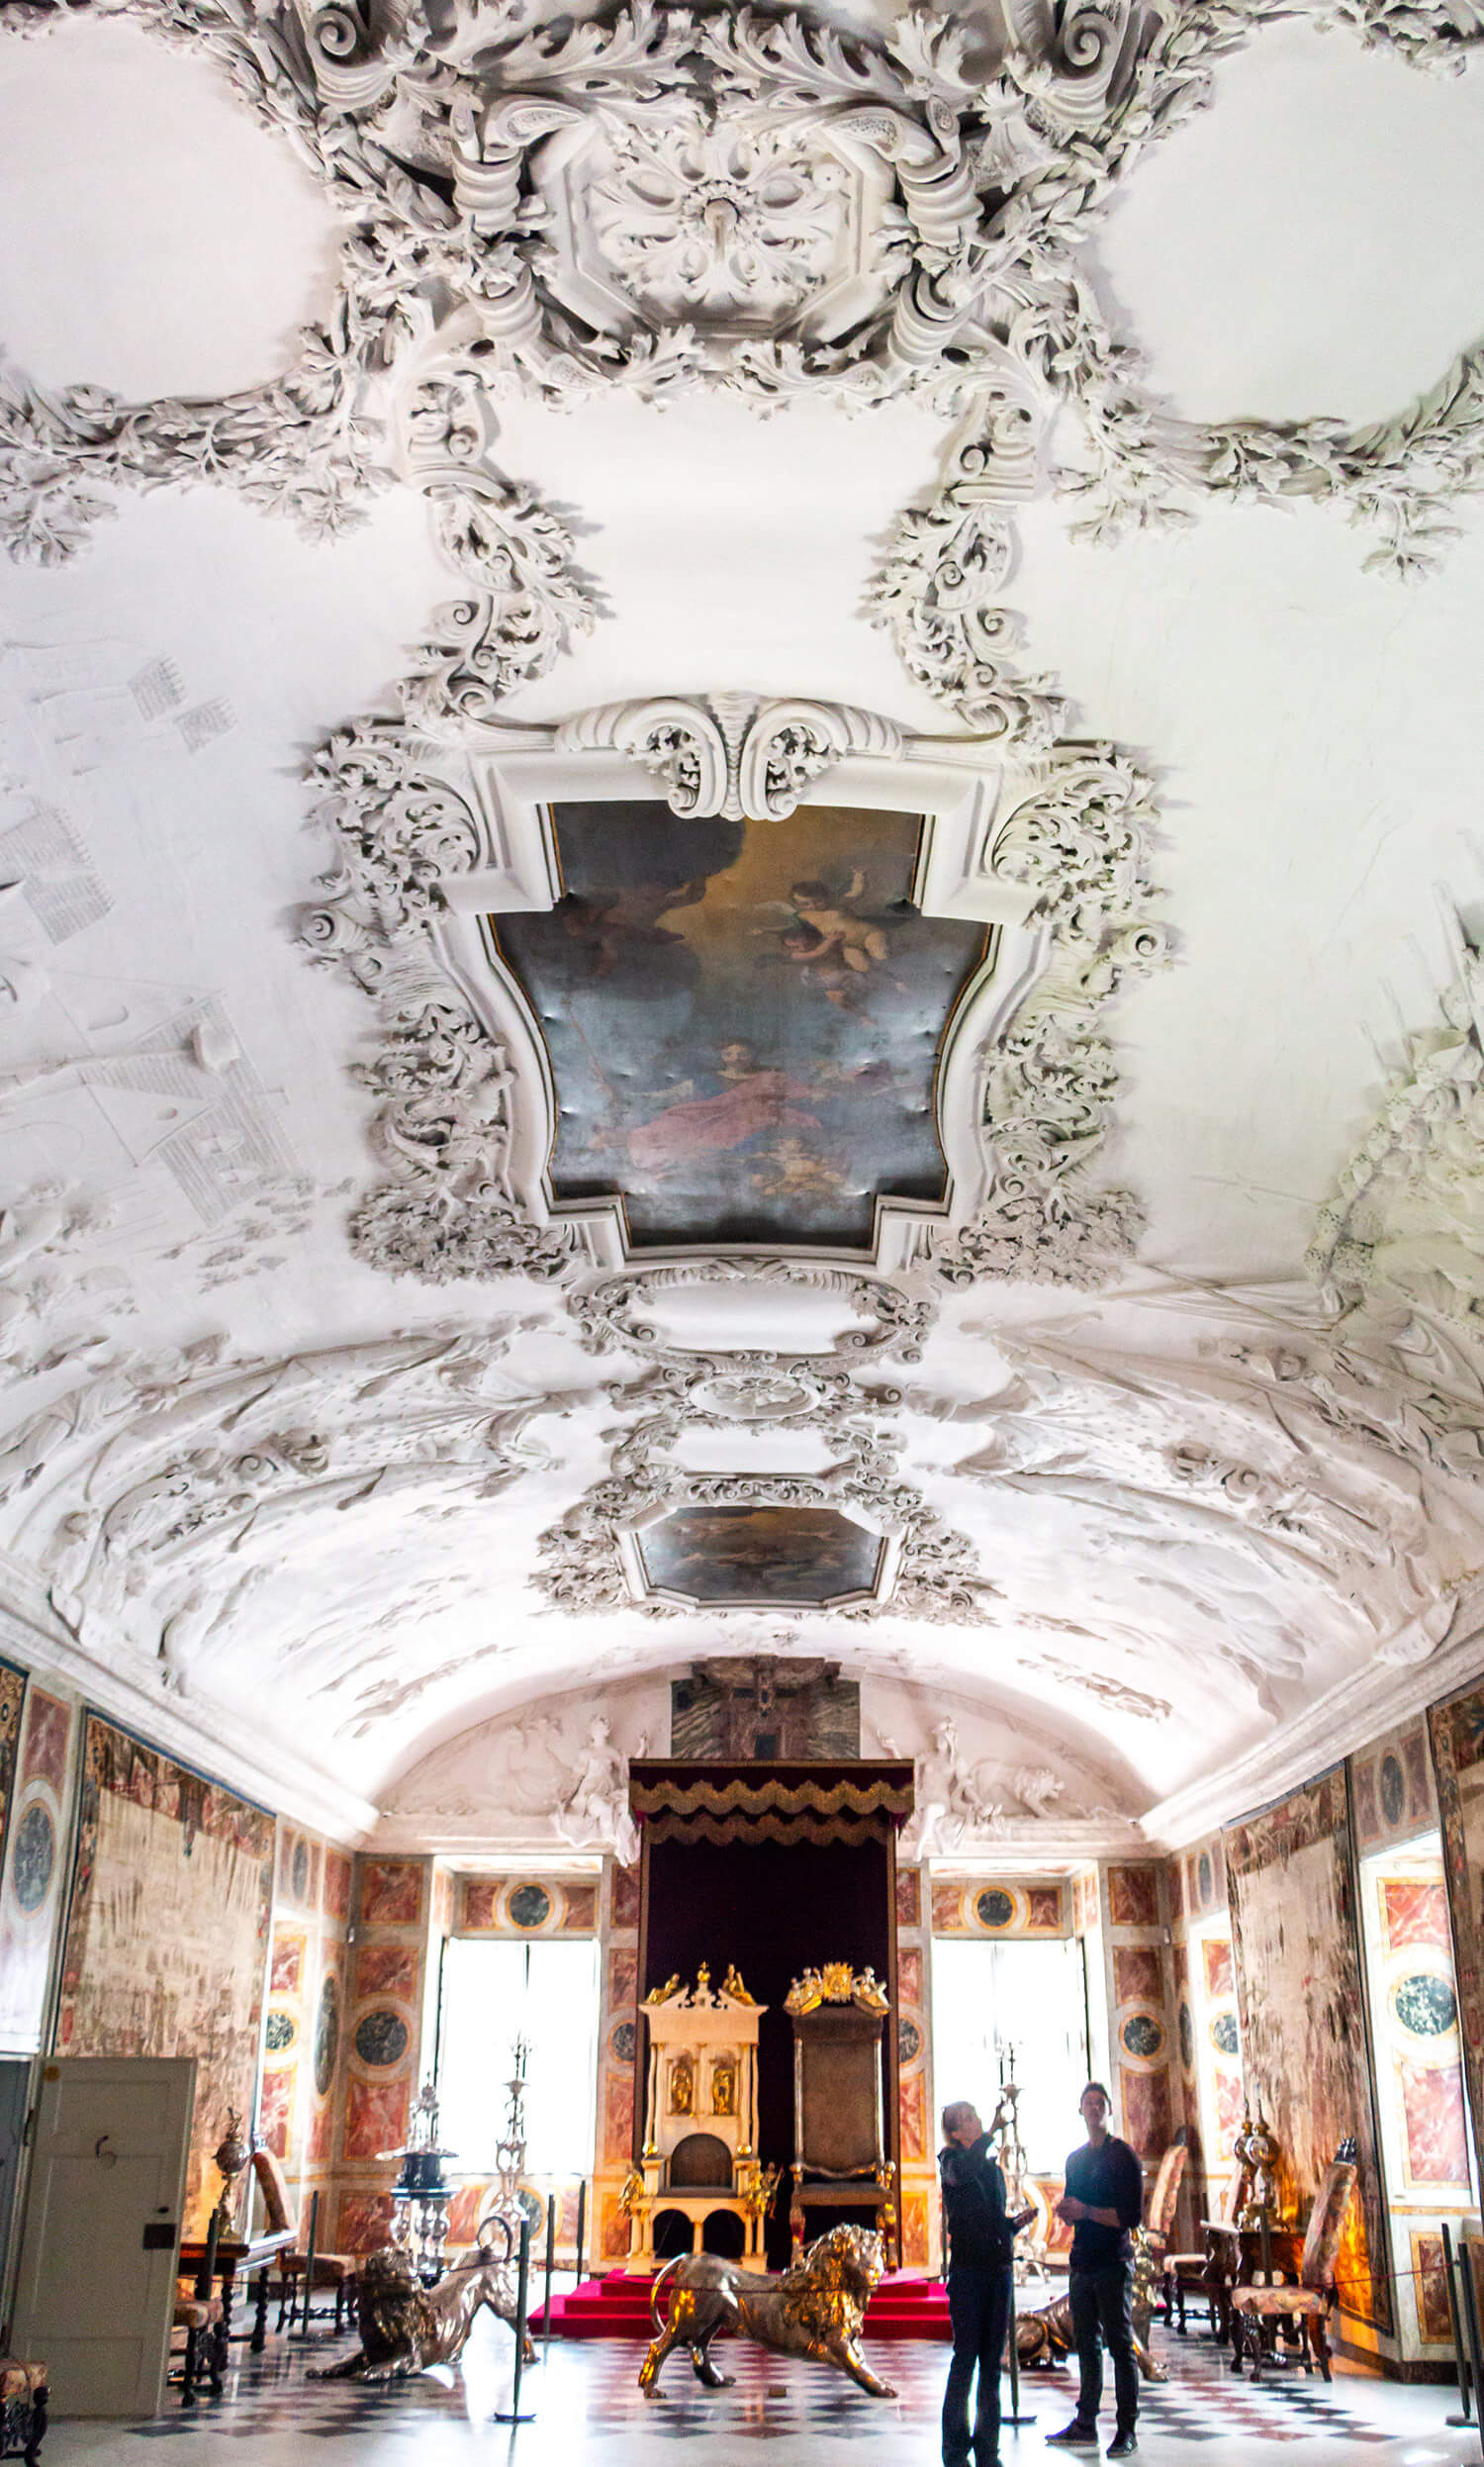 The Rosenborg Castle ceiling